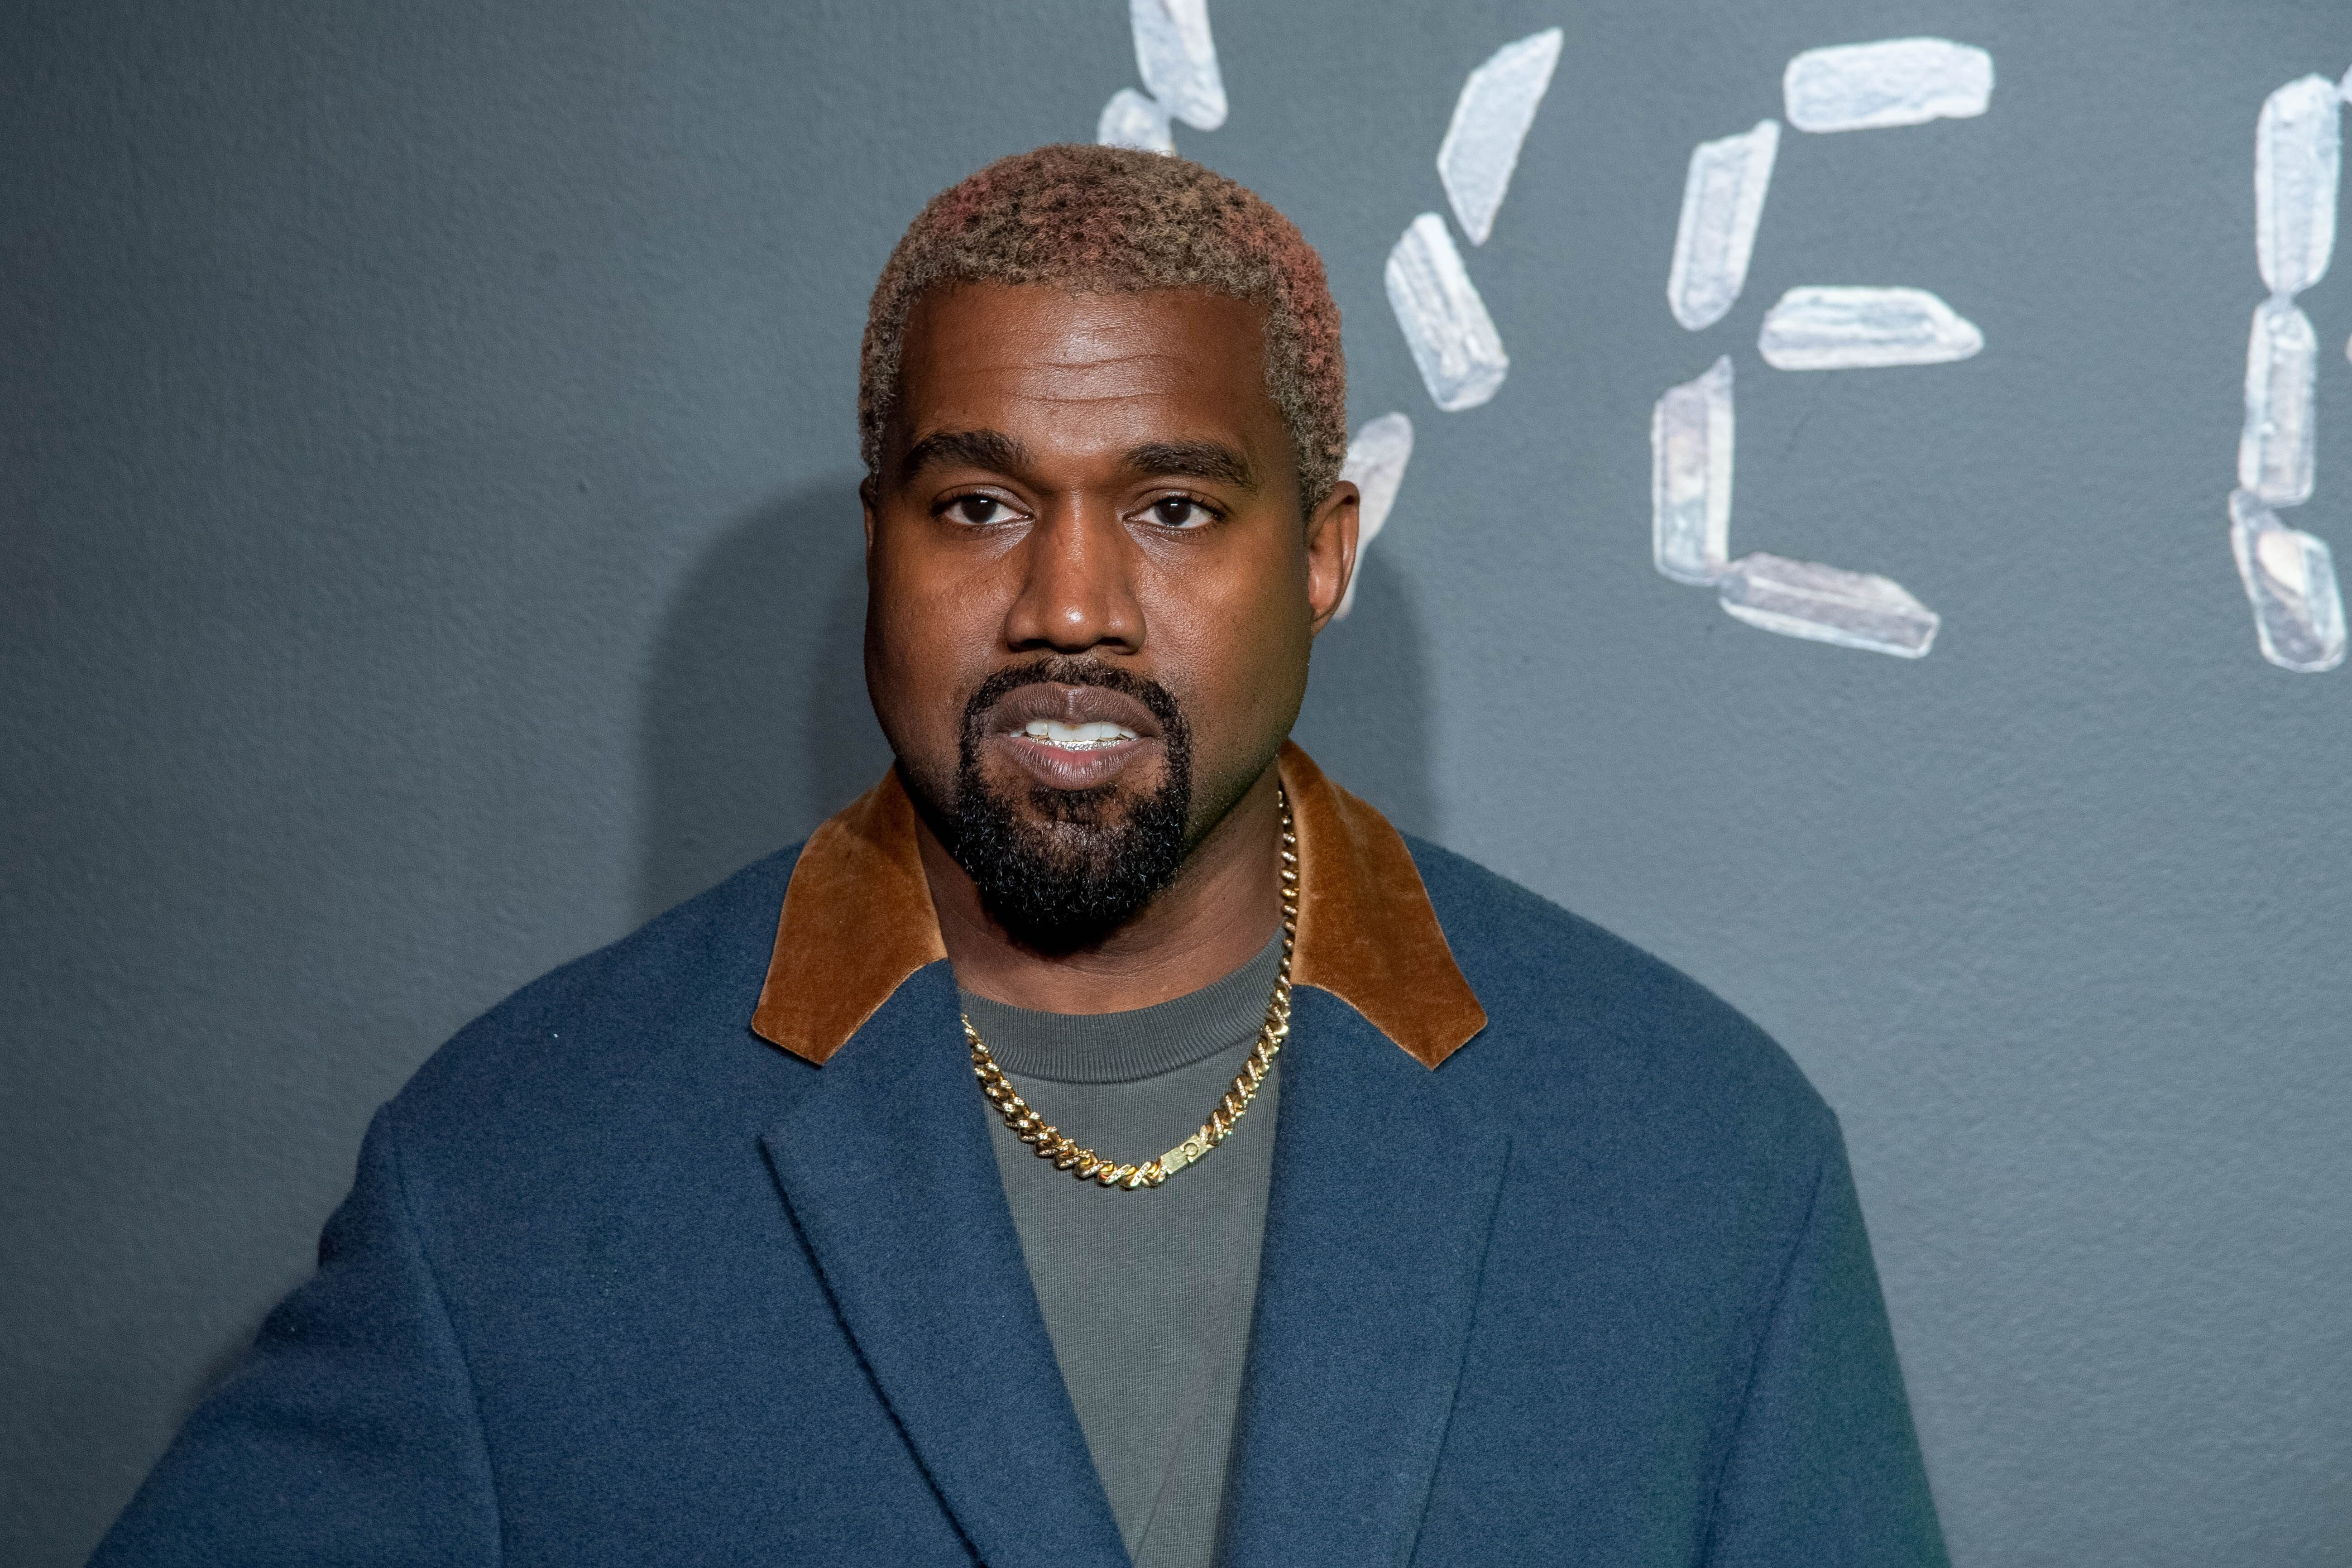 Kanye West at the Versace fall 2019 fashion show in New York/ Source: Getty Images